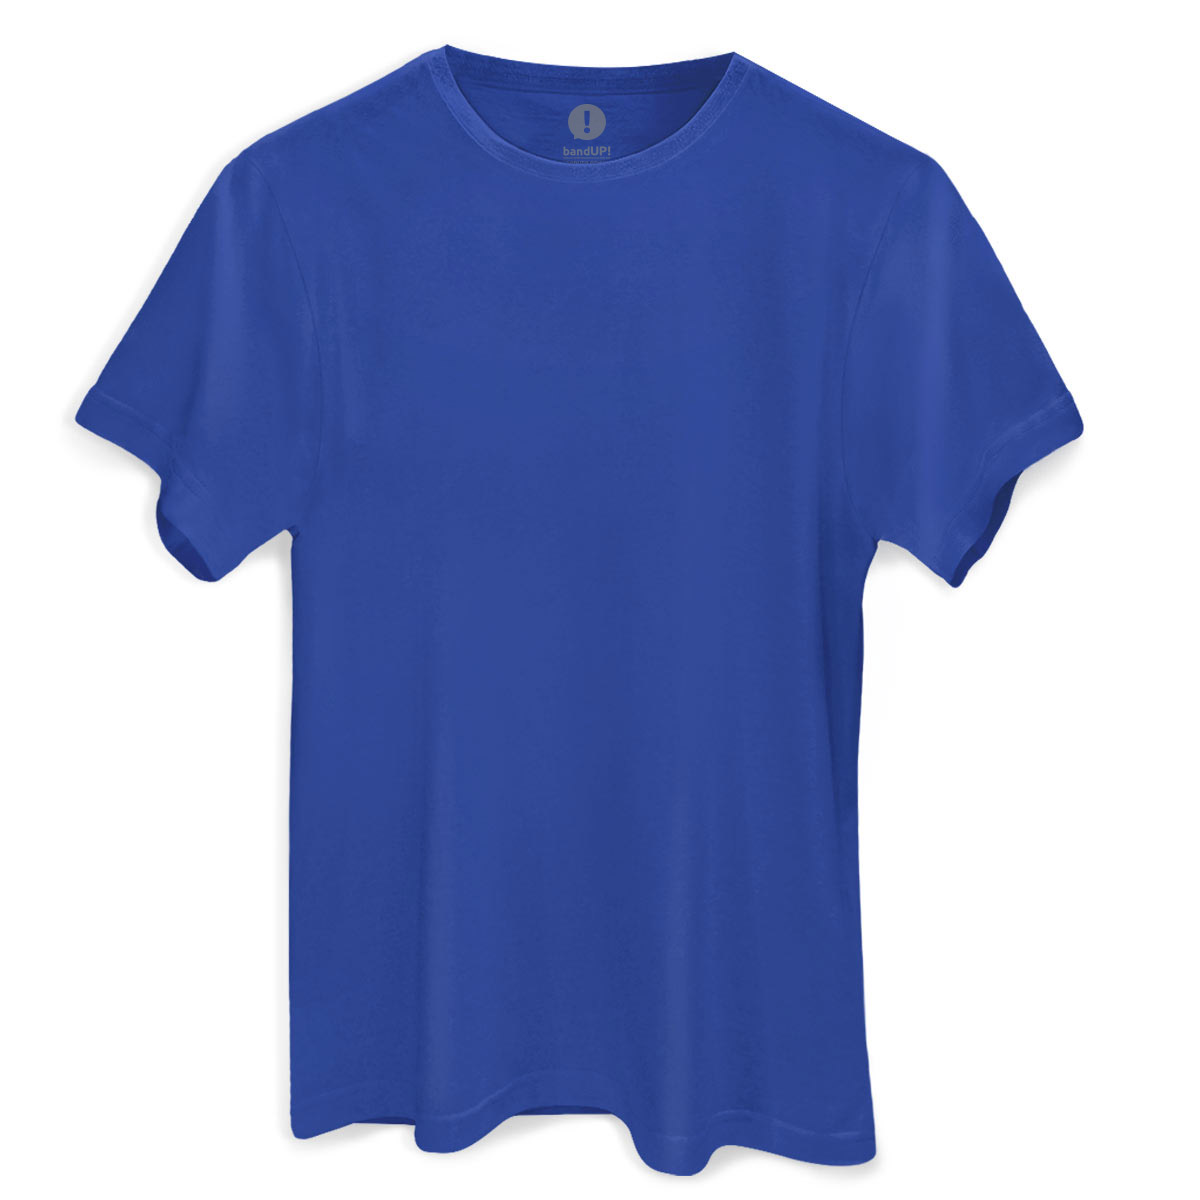 Camiseta Masculina Azul Royal